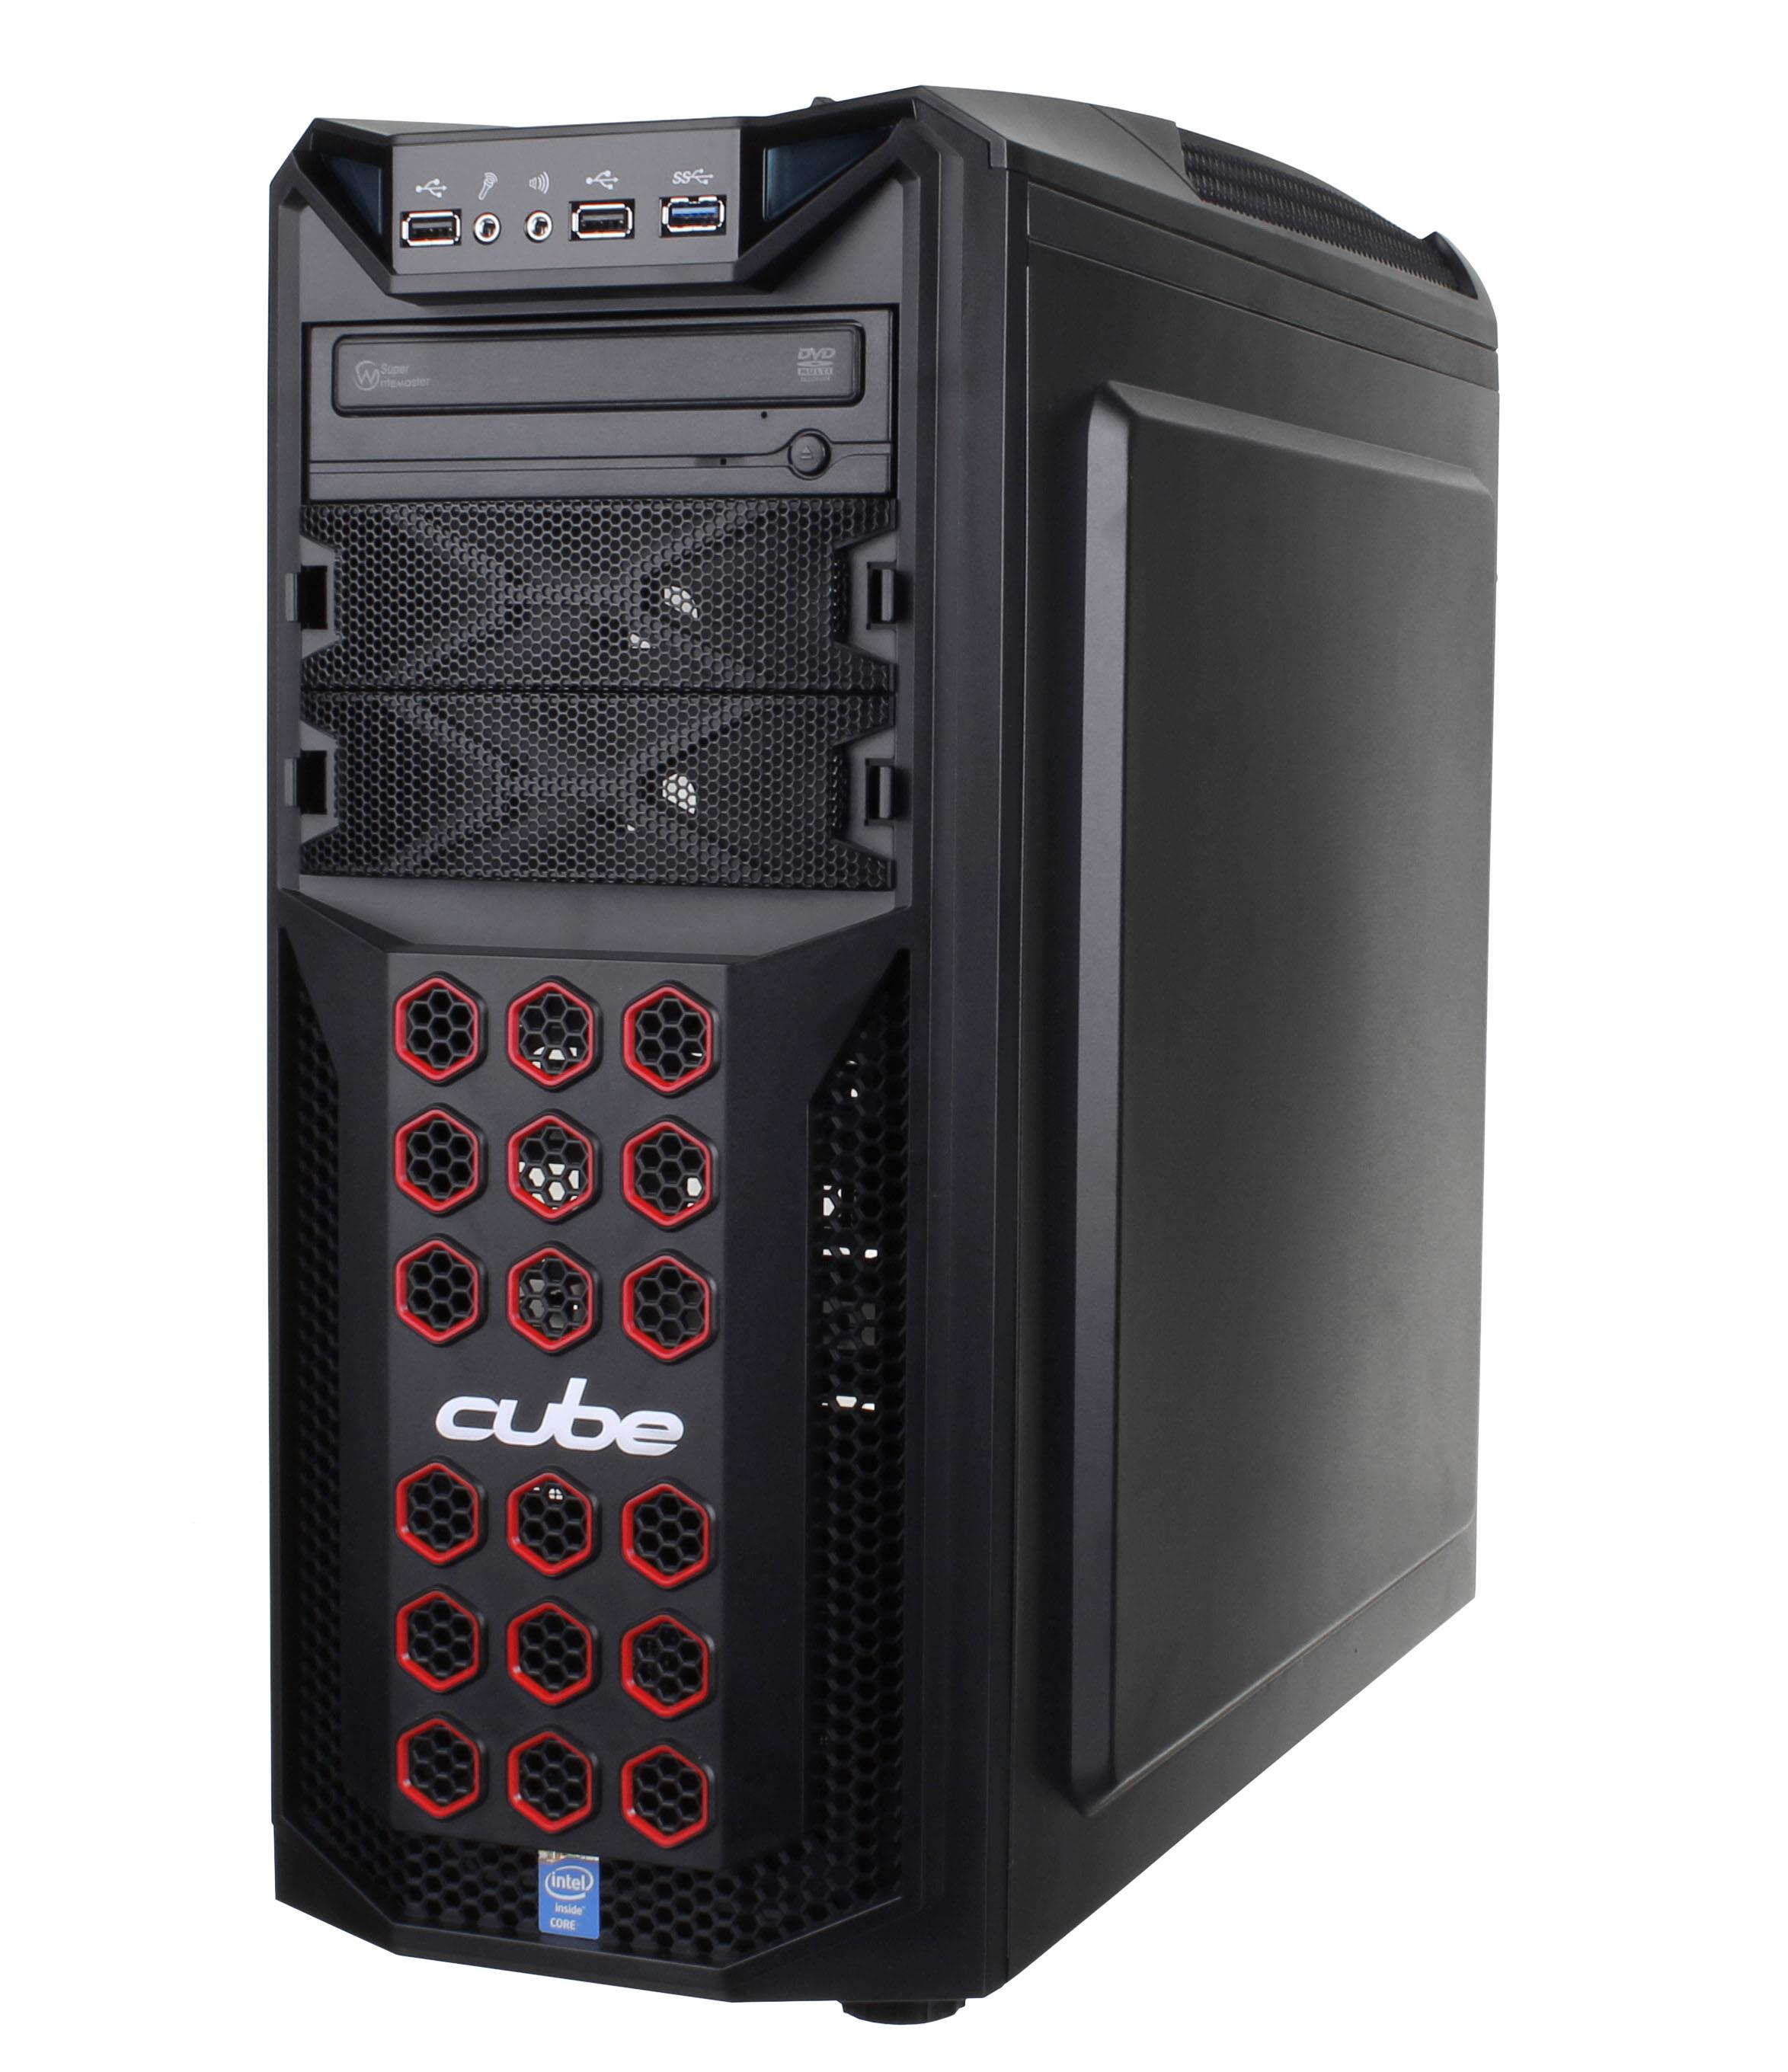 Cube Raptor Gaming PC Core i5 with Radeon R7 265 OC Graphics